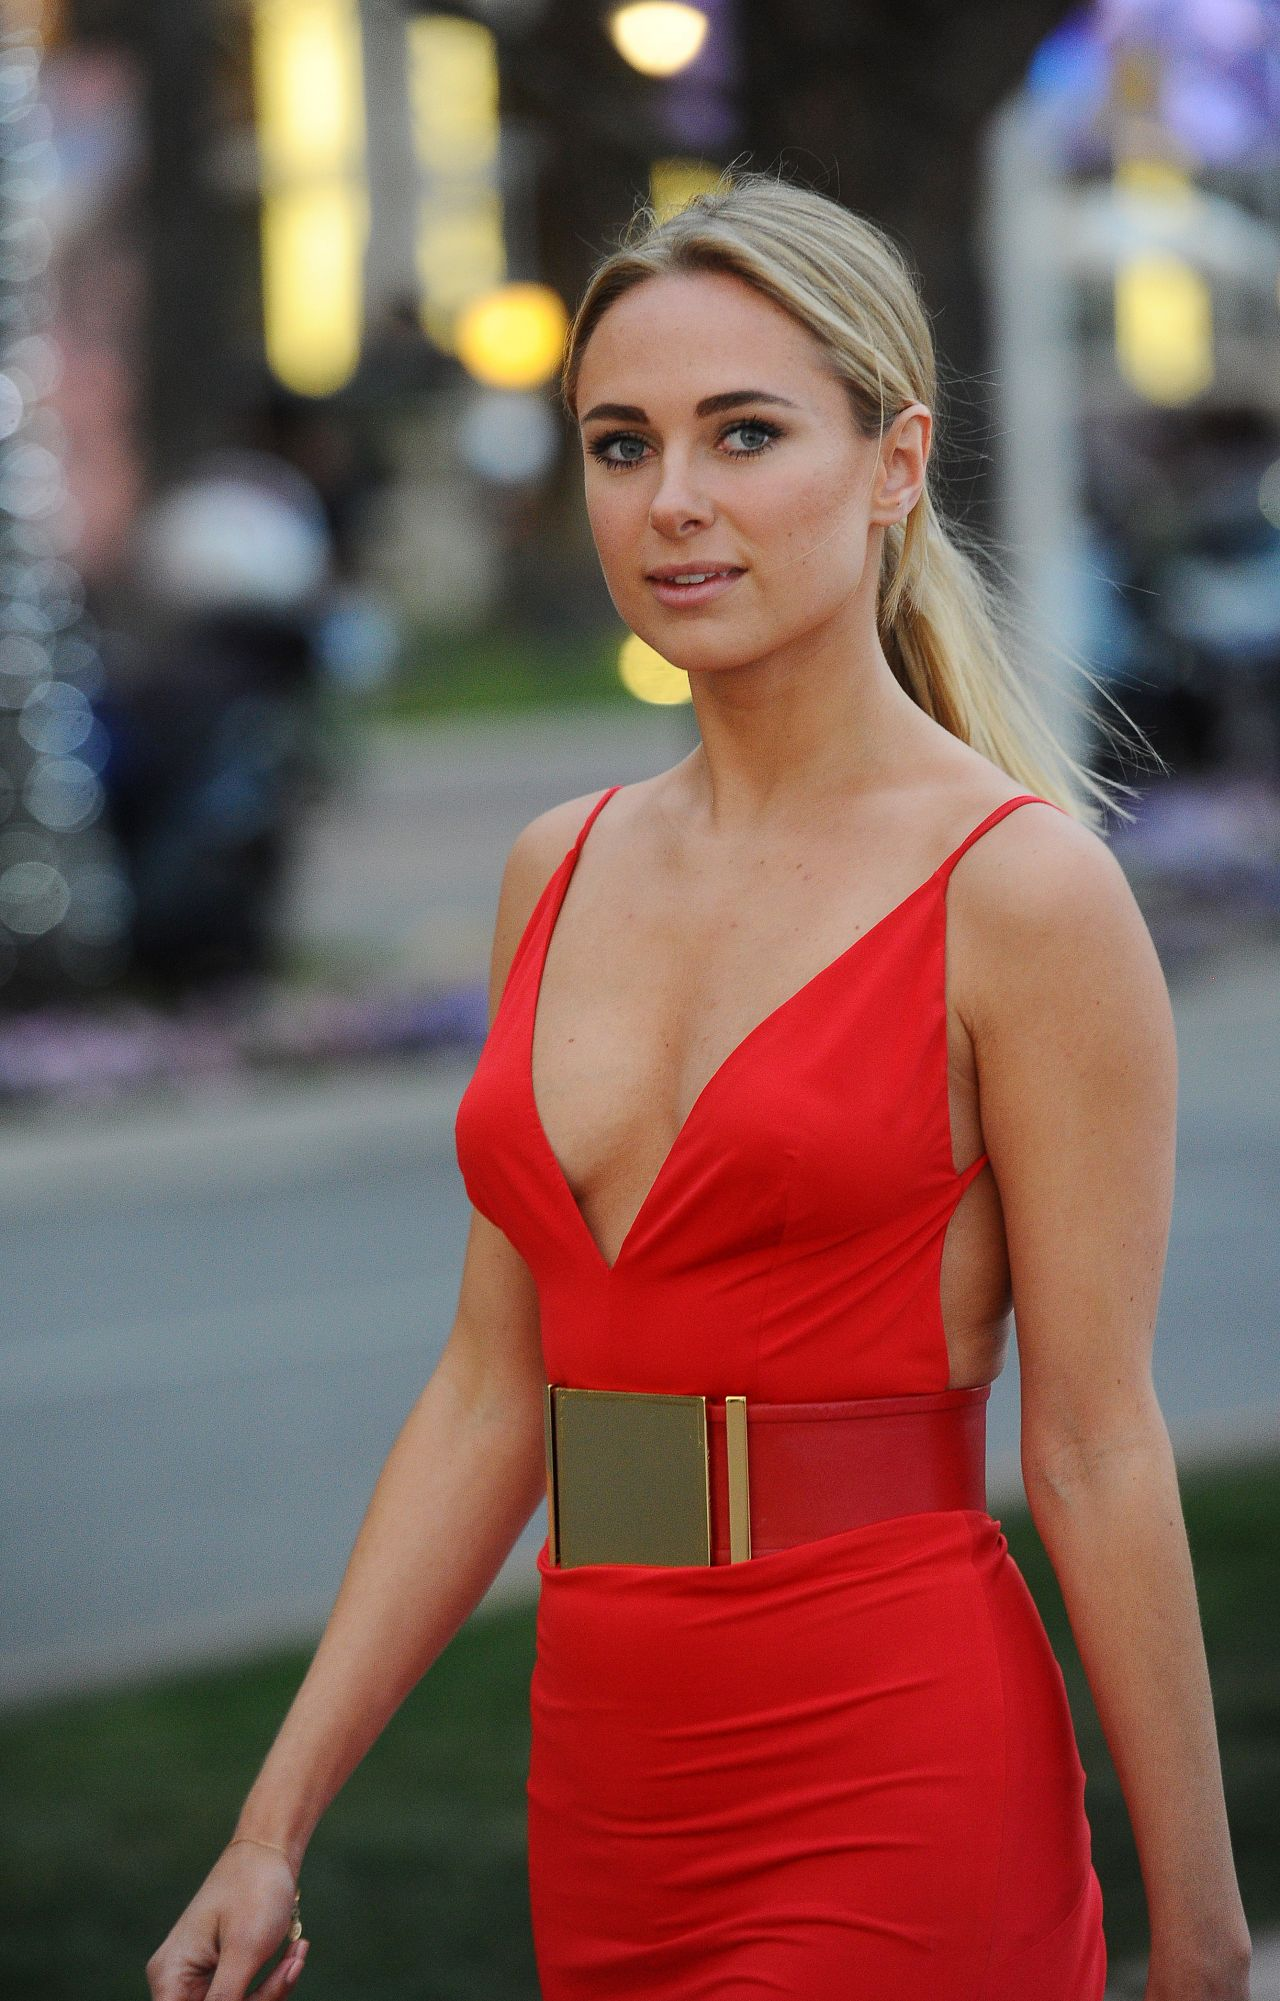 Kimberley Garner In A Slinky Red Dress At Plage Royale